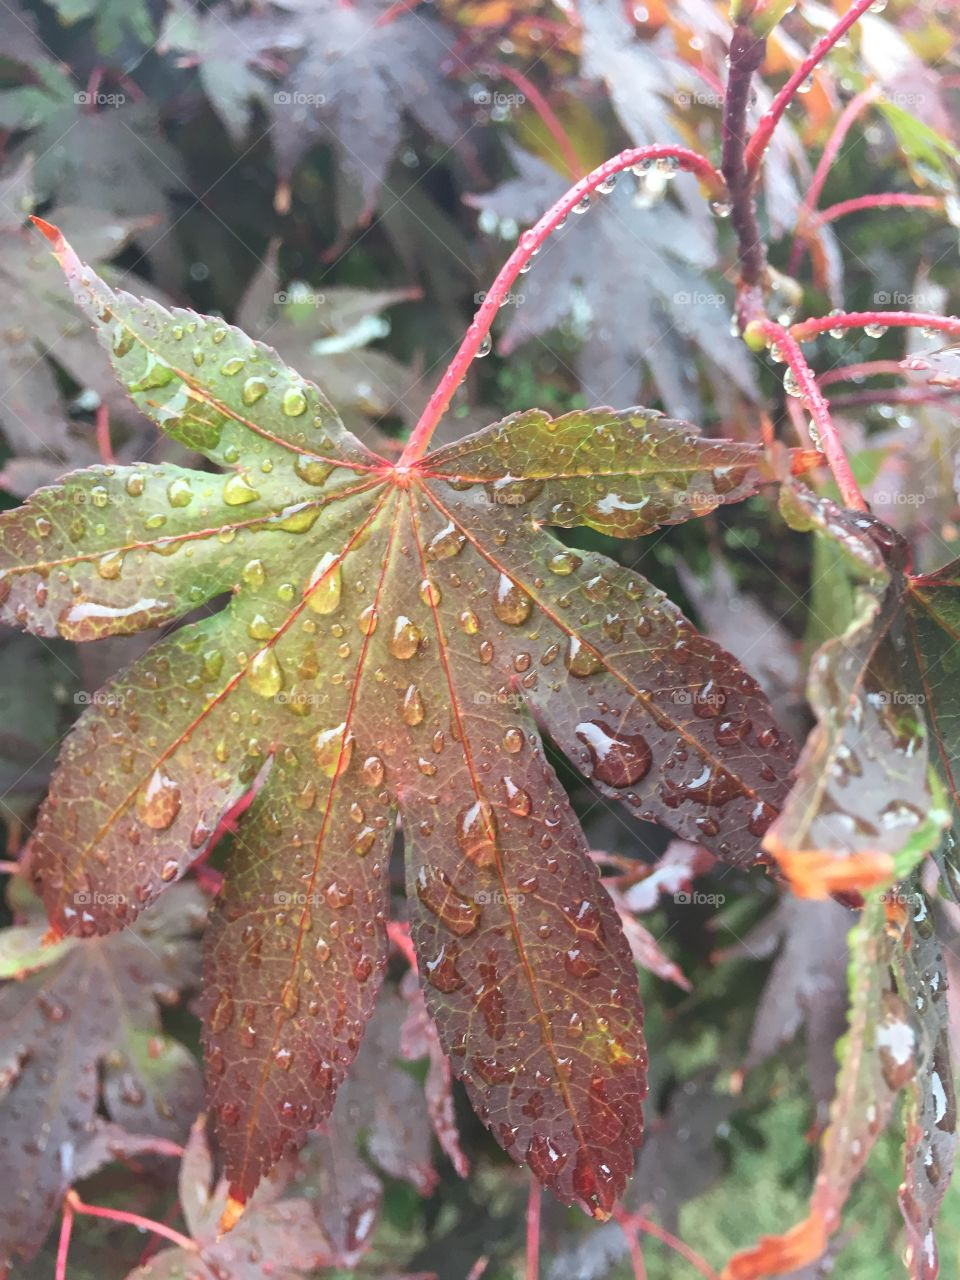 I love walking outside after a good rain. Here I captured the beauty of rain droplets on this leaf from a red leaf maple tree.